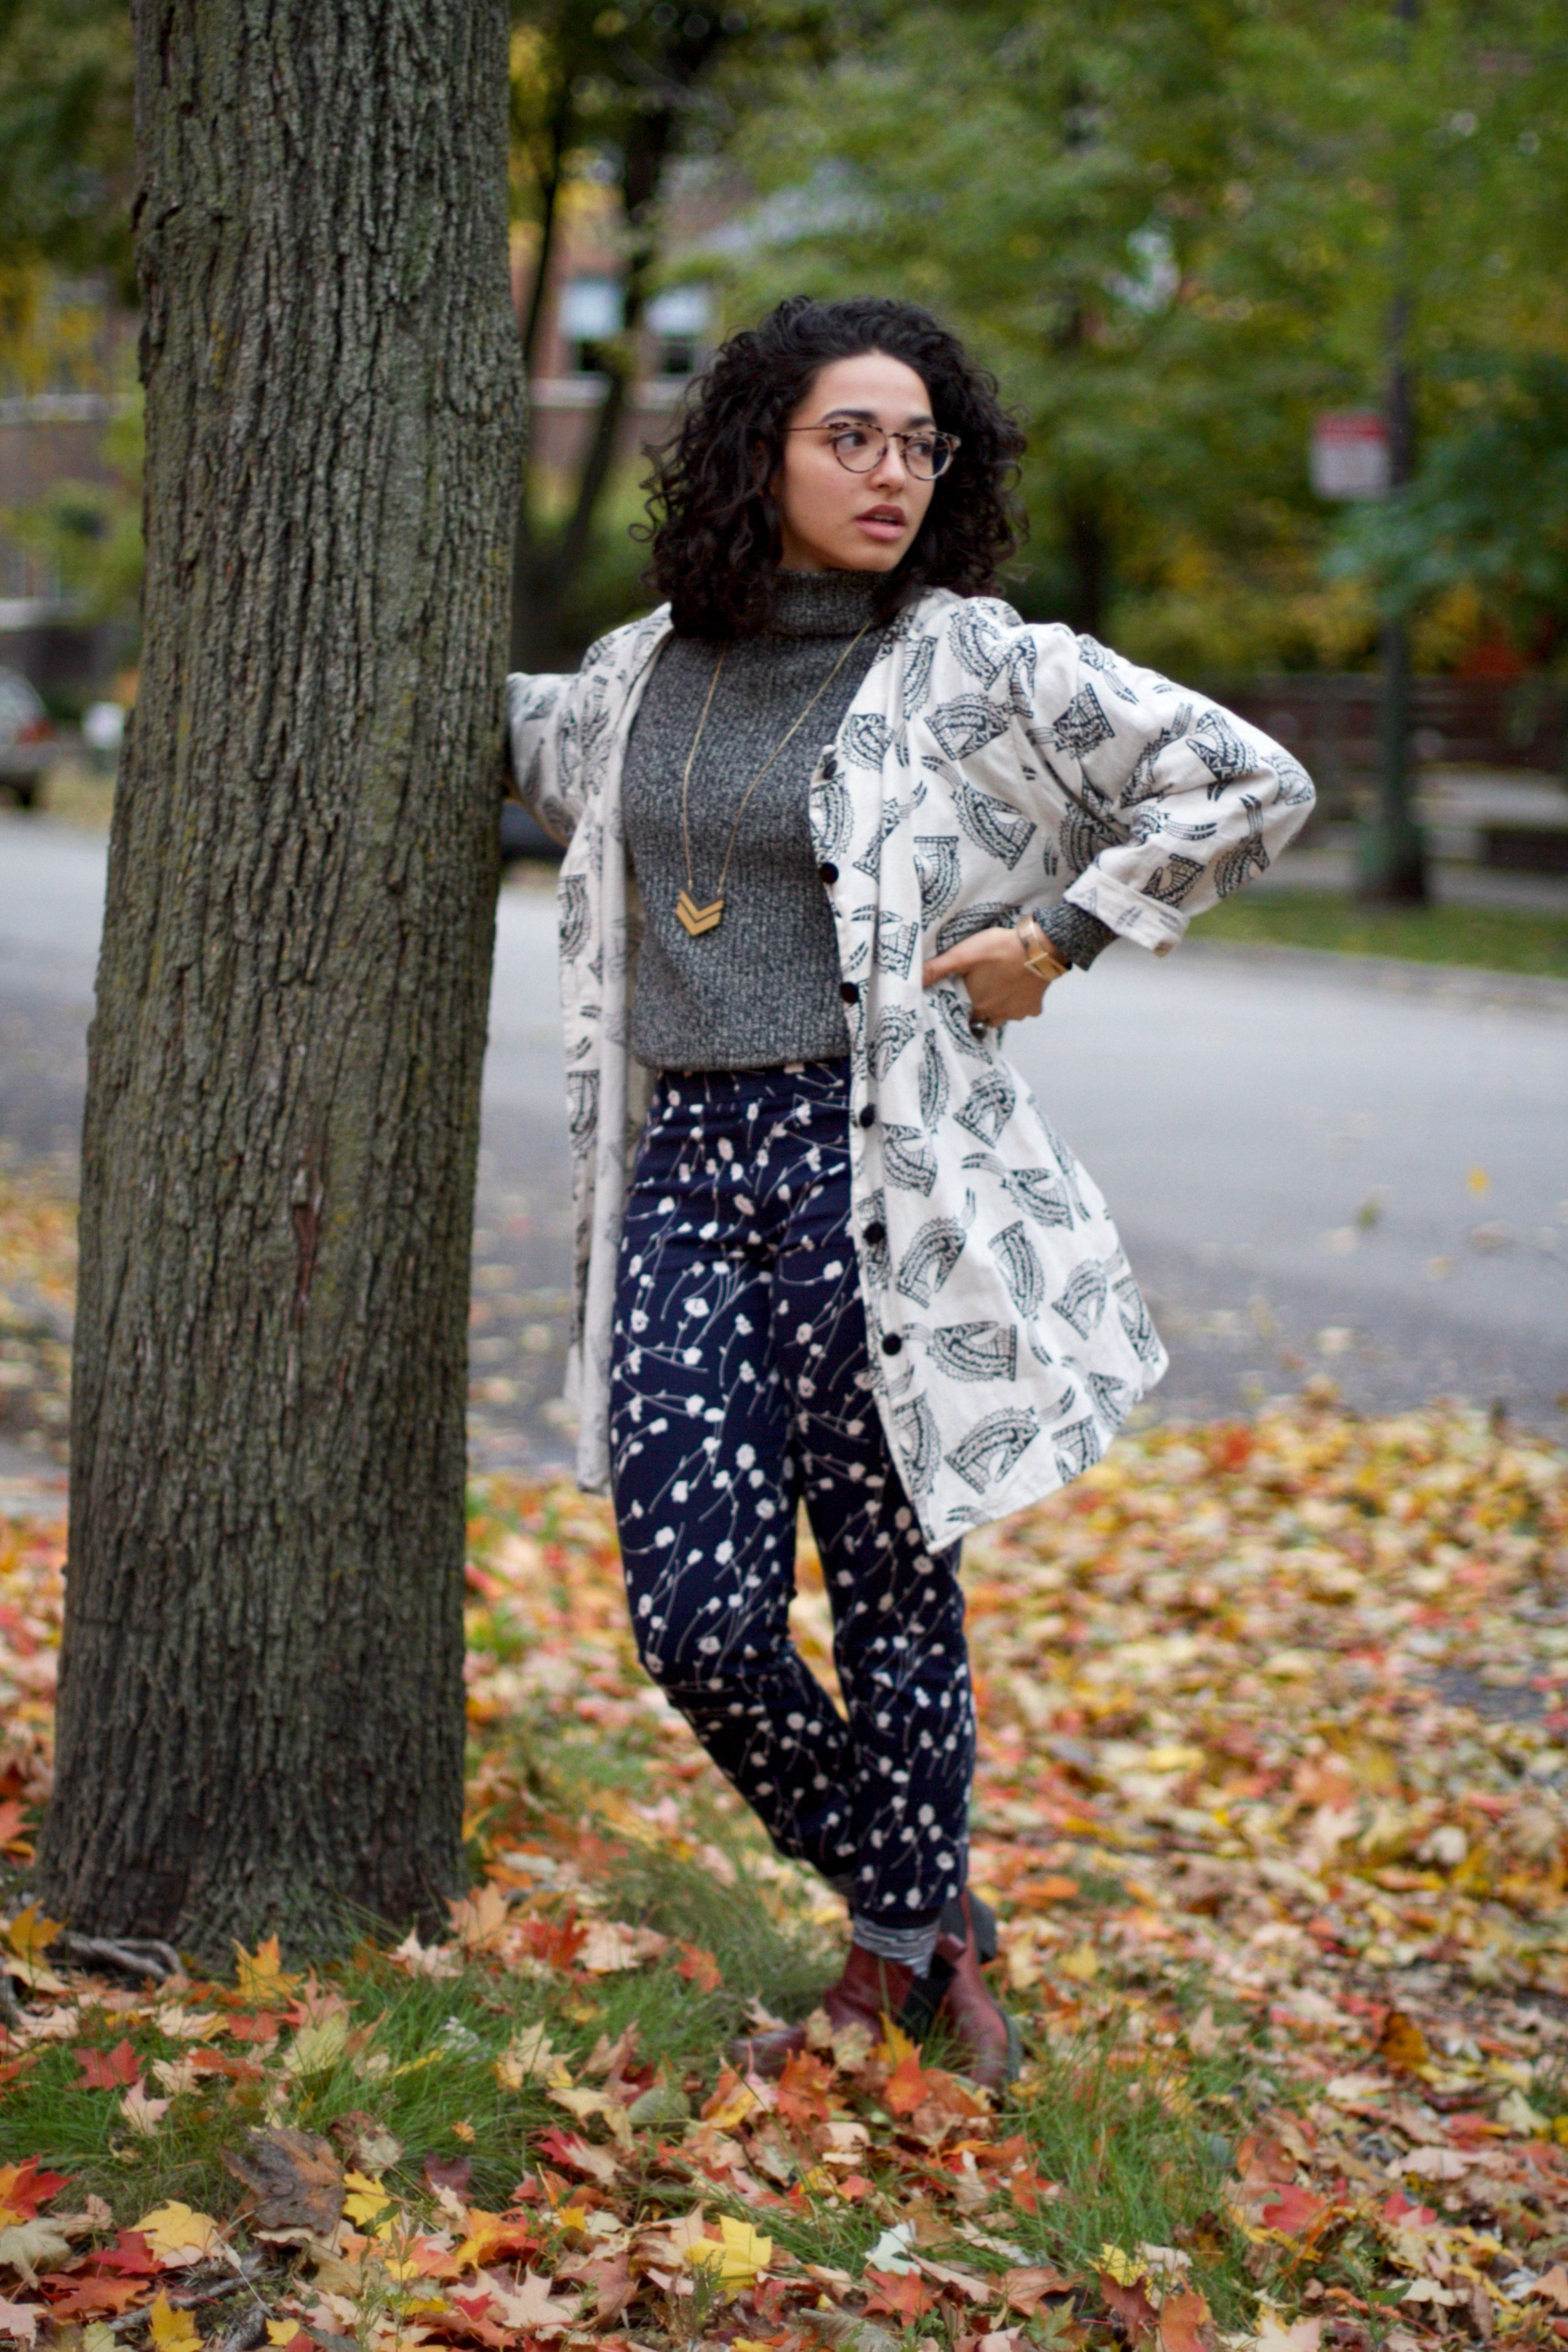 This outfit is textbook power clash – I thrifted the pants from Goodwill, both the sweater and linen jacket are from Beacon's Closet, my glasses are Warby Parker, and I got the neck scarf from Madewell!